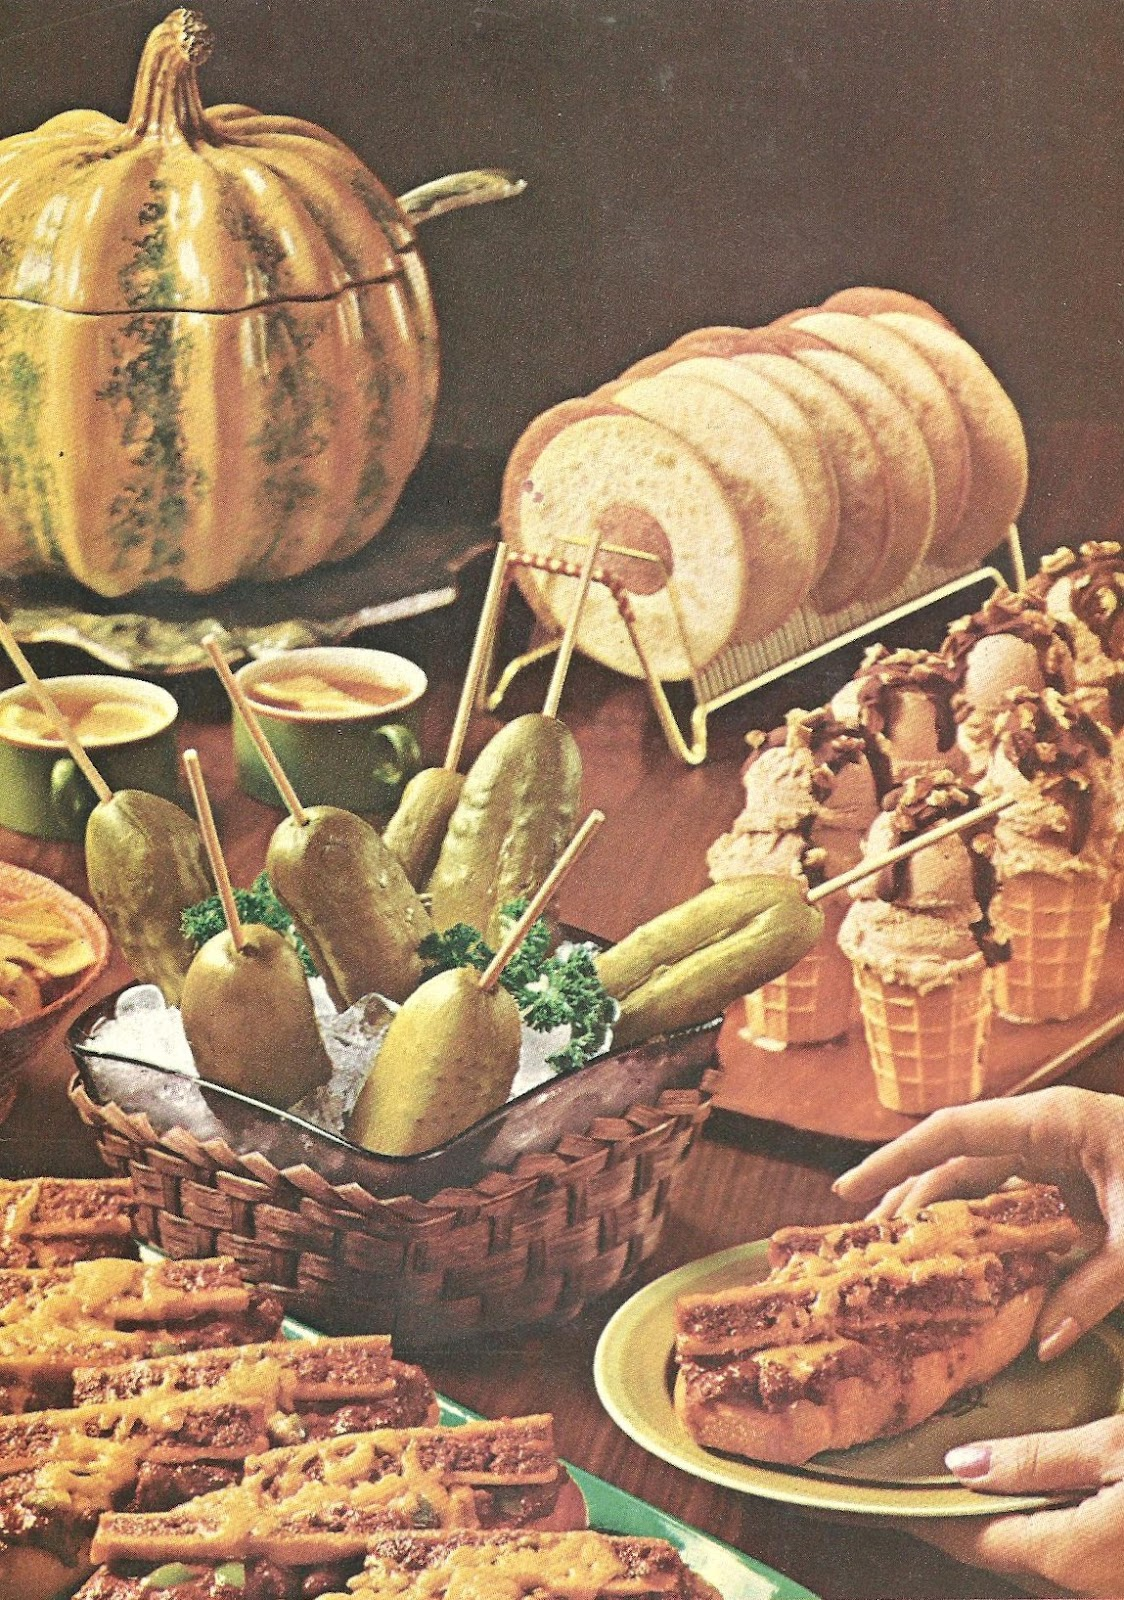 bad and ugly of retro food - Buffet Retro Cuisine